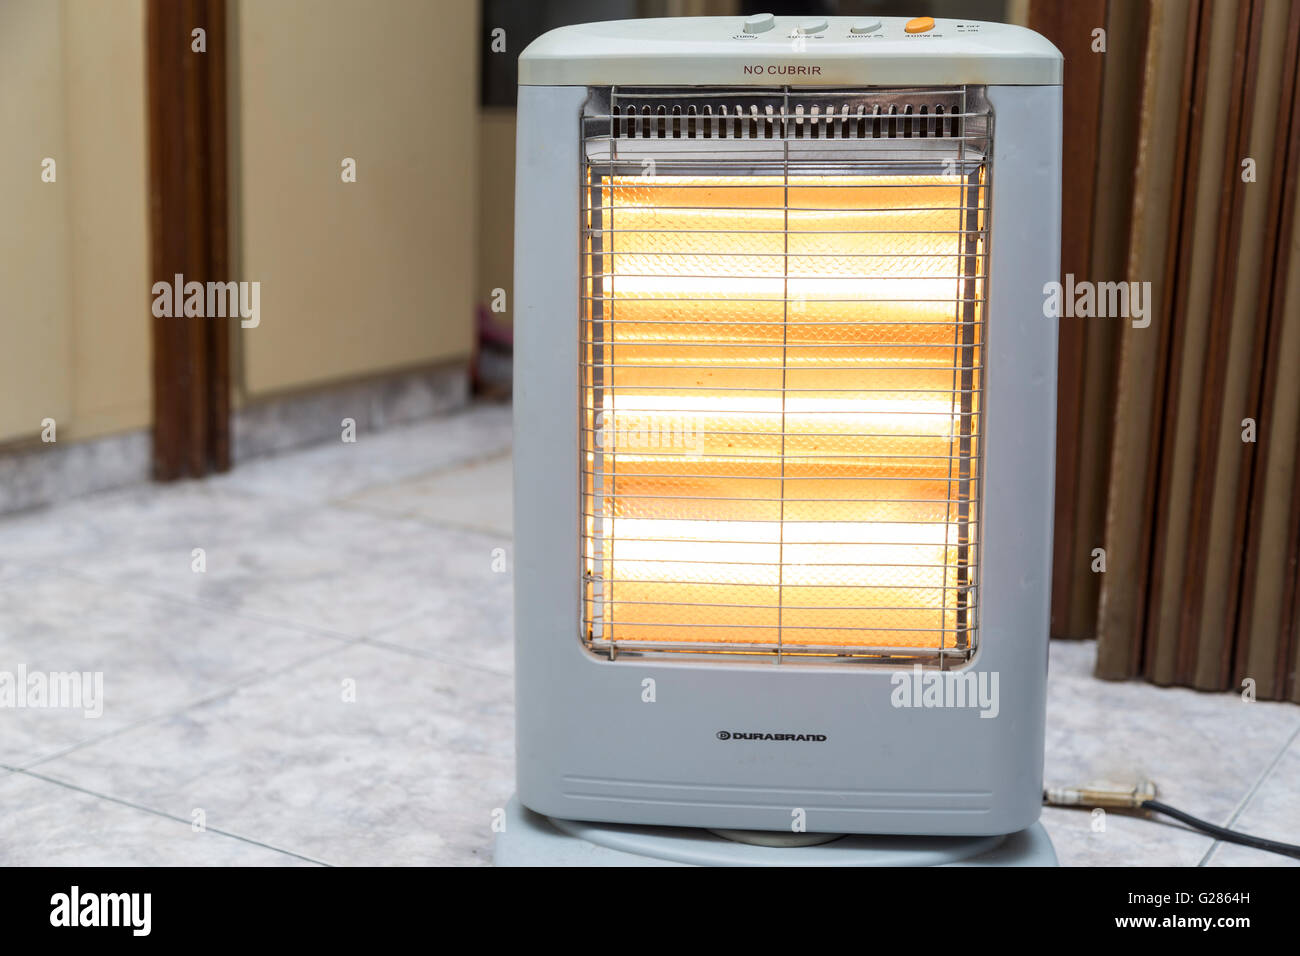 Electric heater plugged in - Stock Image